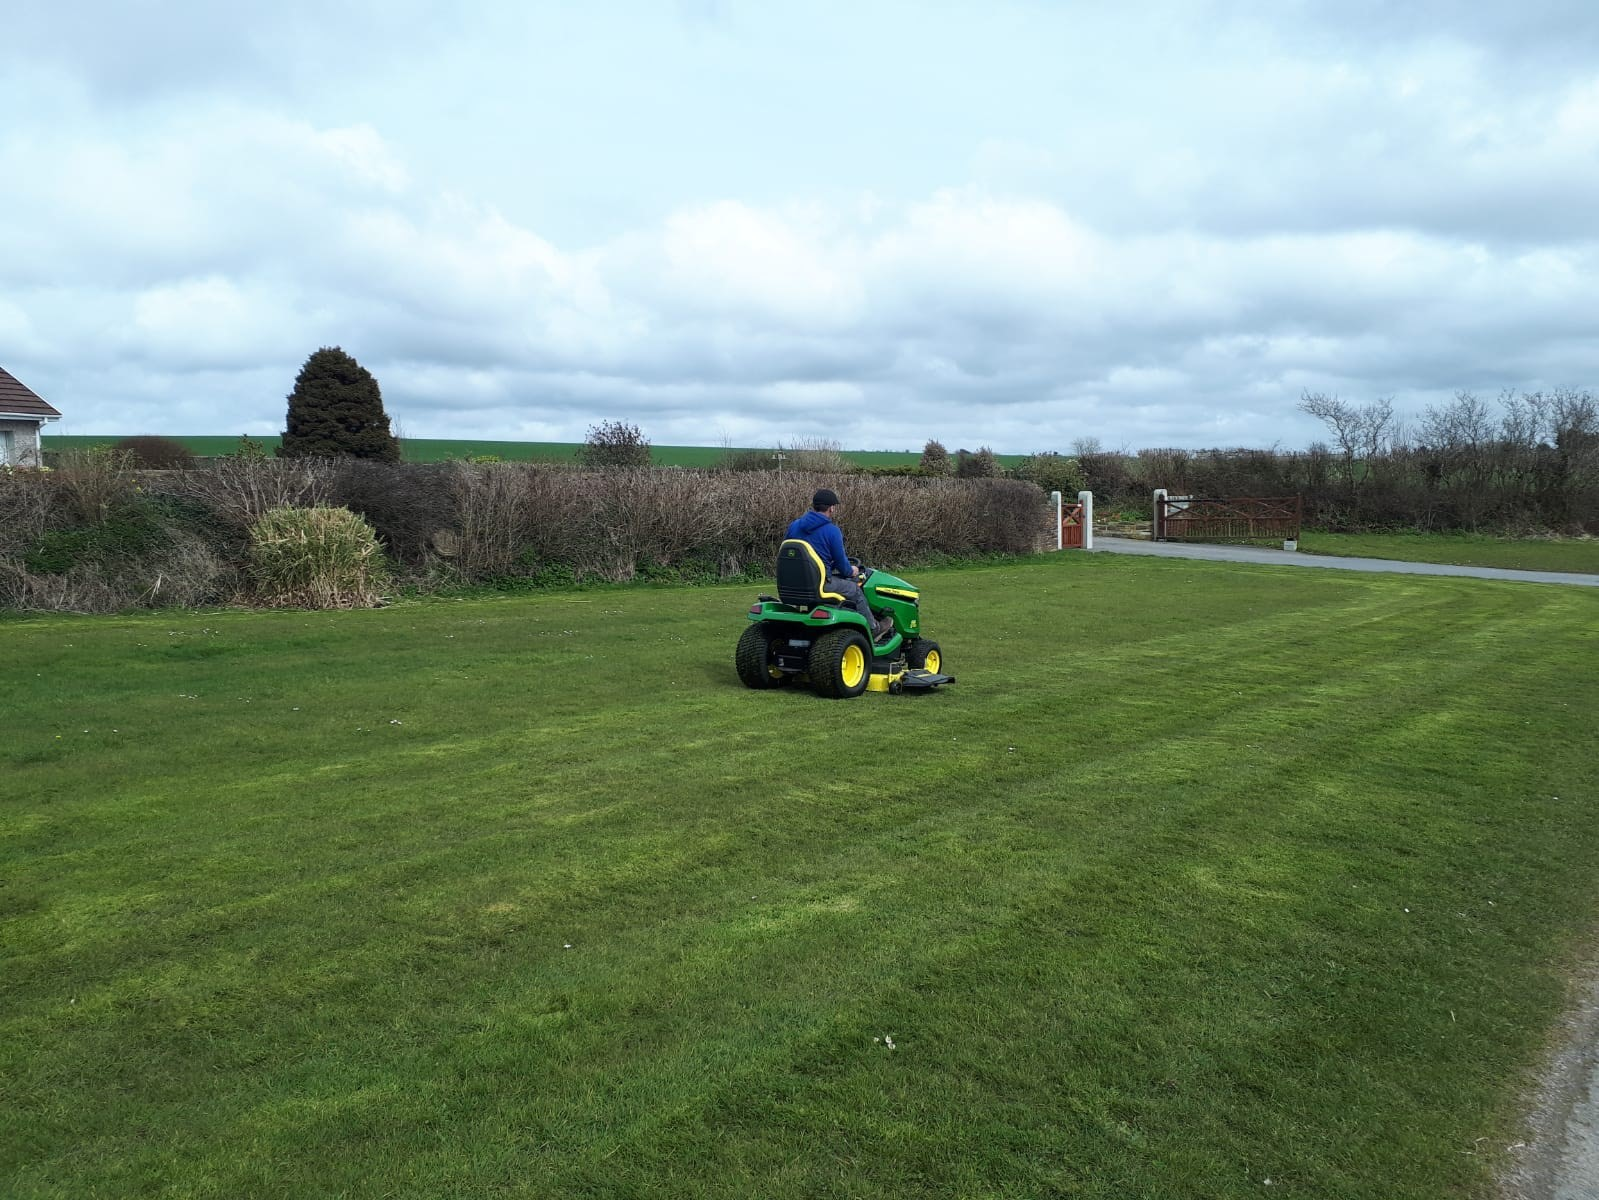 Groundskeeping Cornwall - Mid Cornwall Construction Ltd